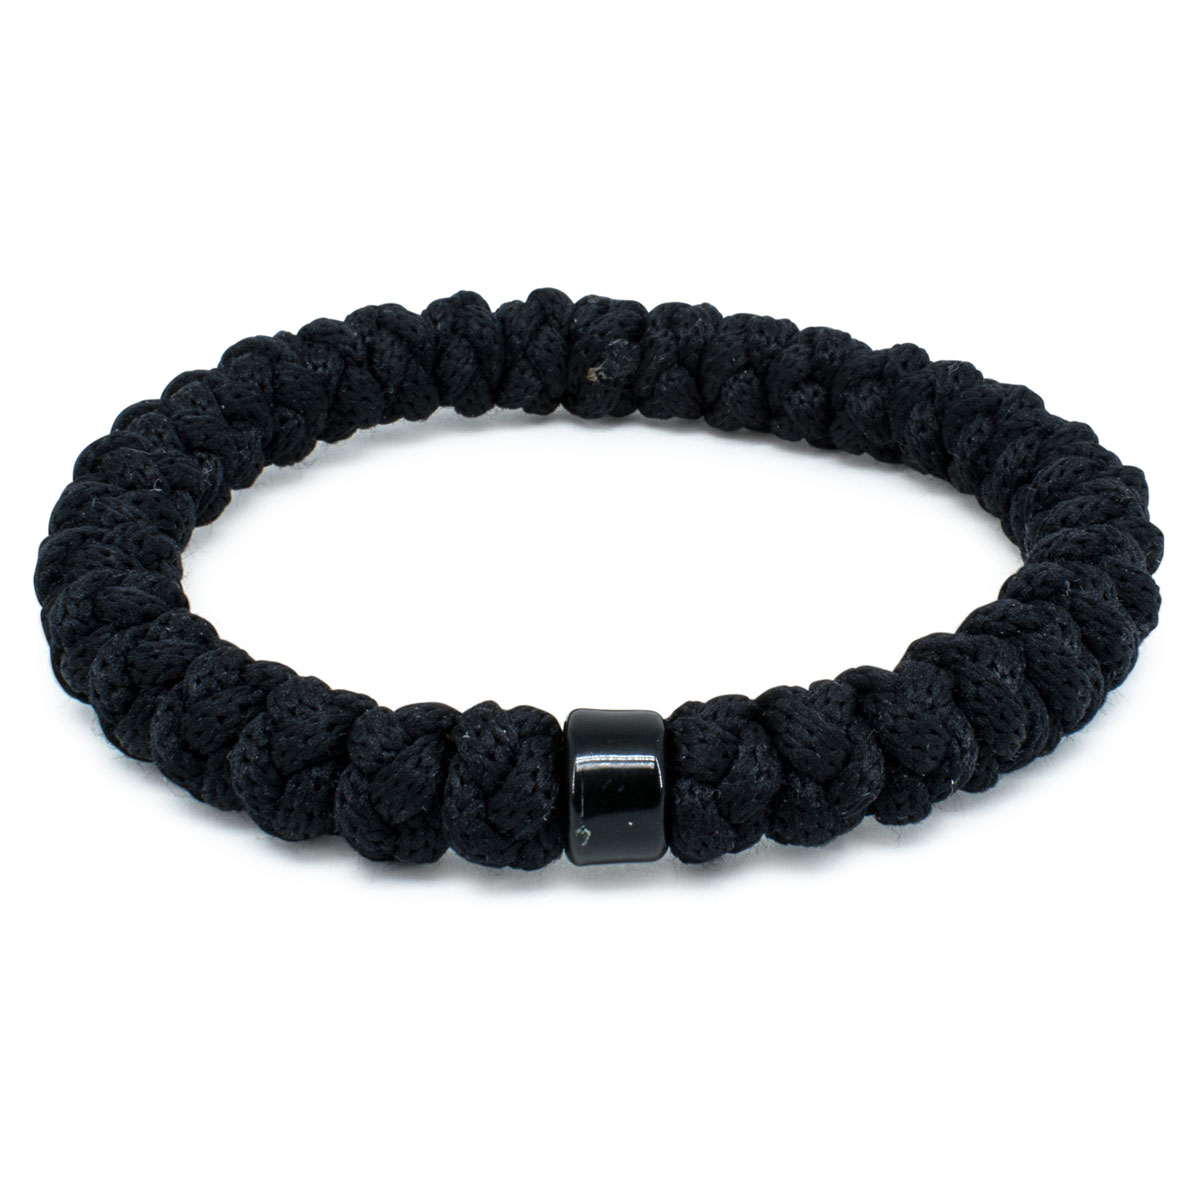 Black Prayer Bracelet With Bead 0